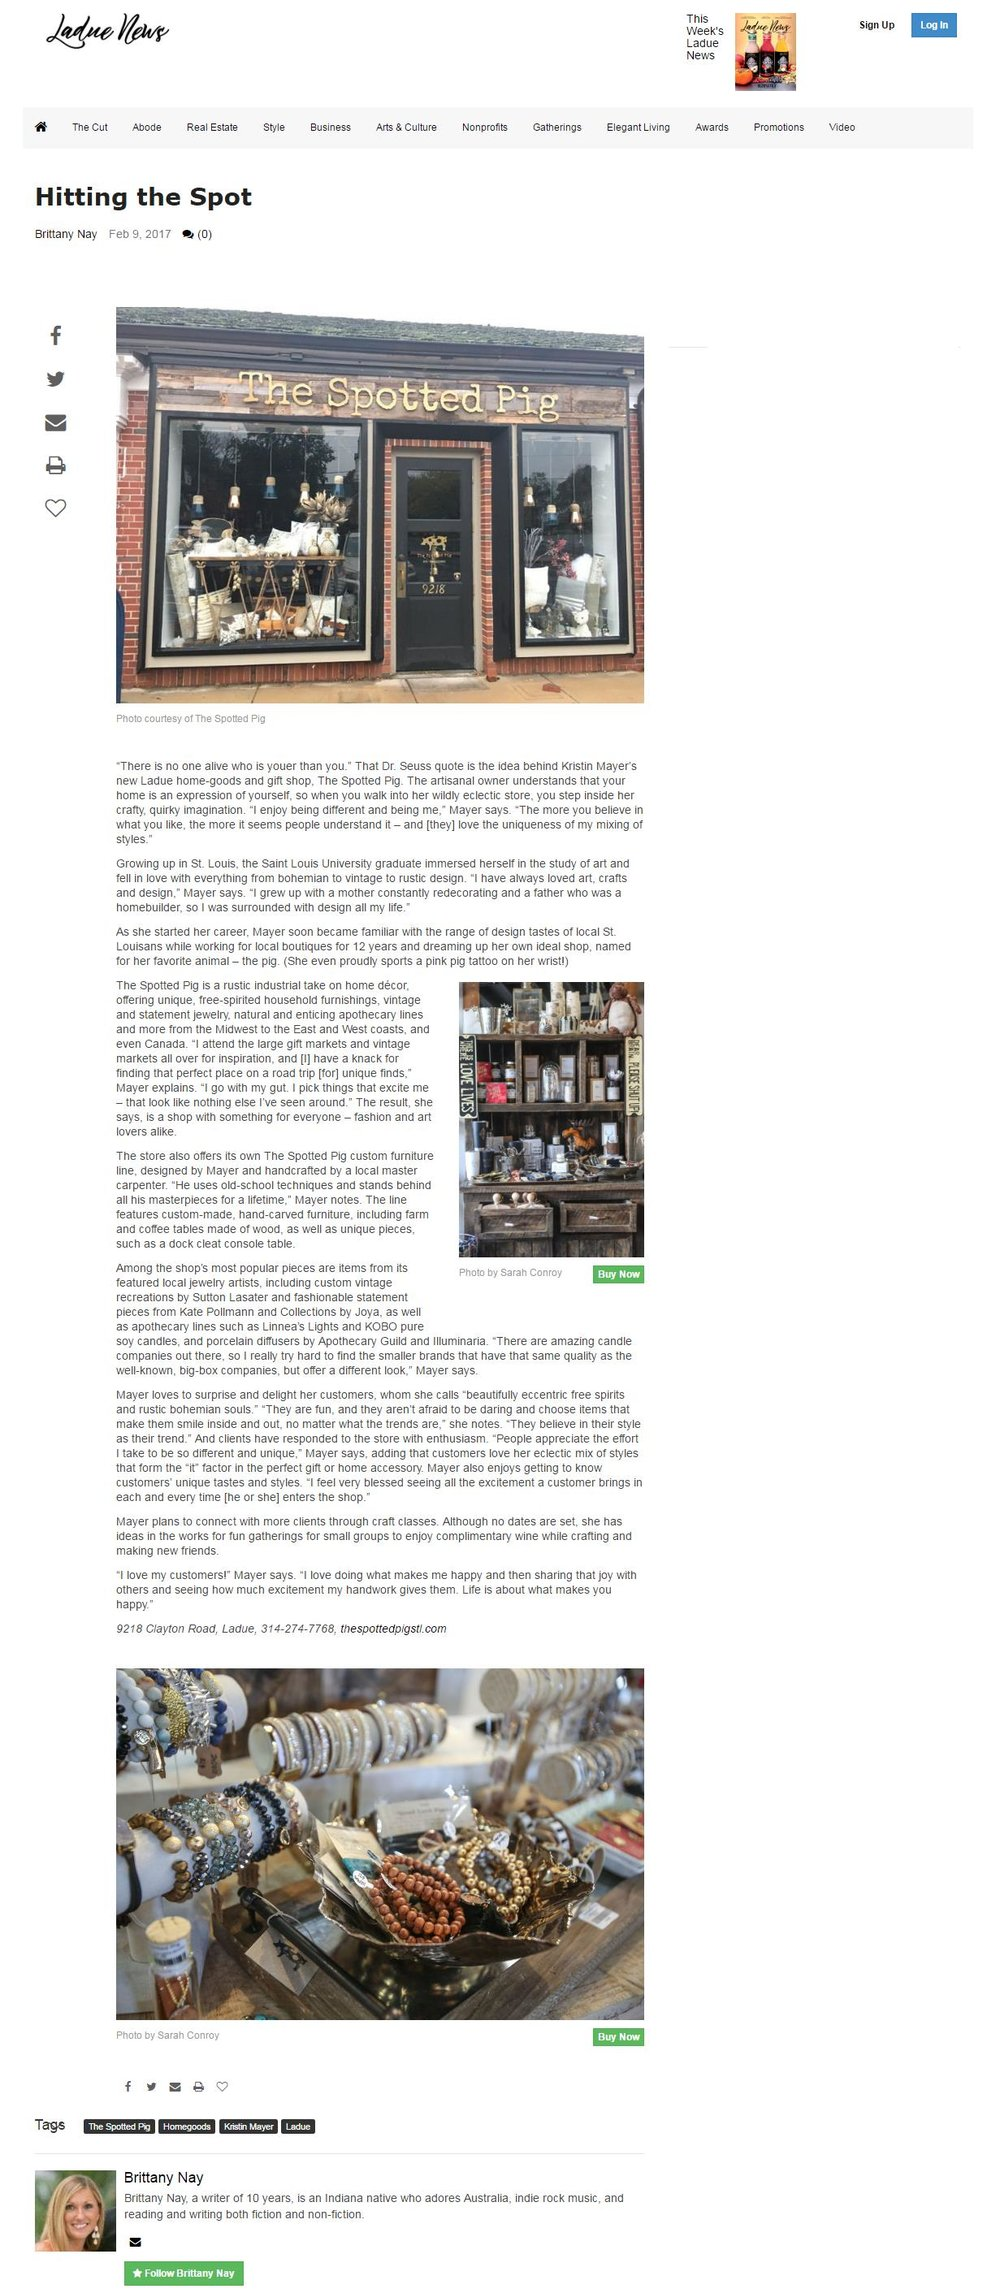 Ladue News Feature on Stockist: The Spotted Pig